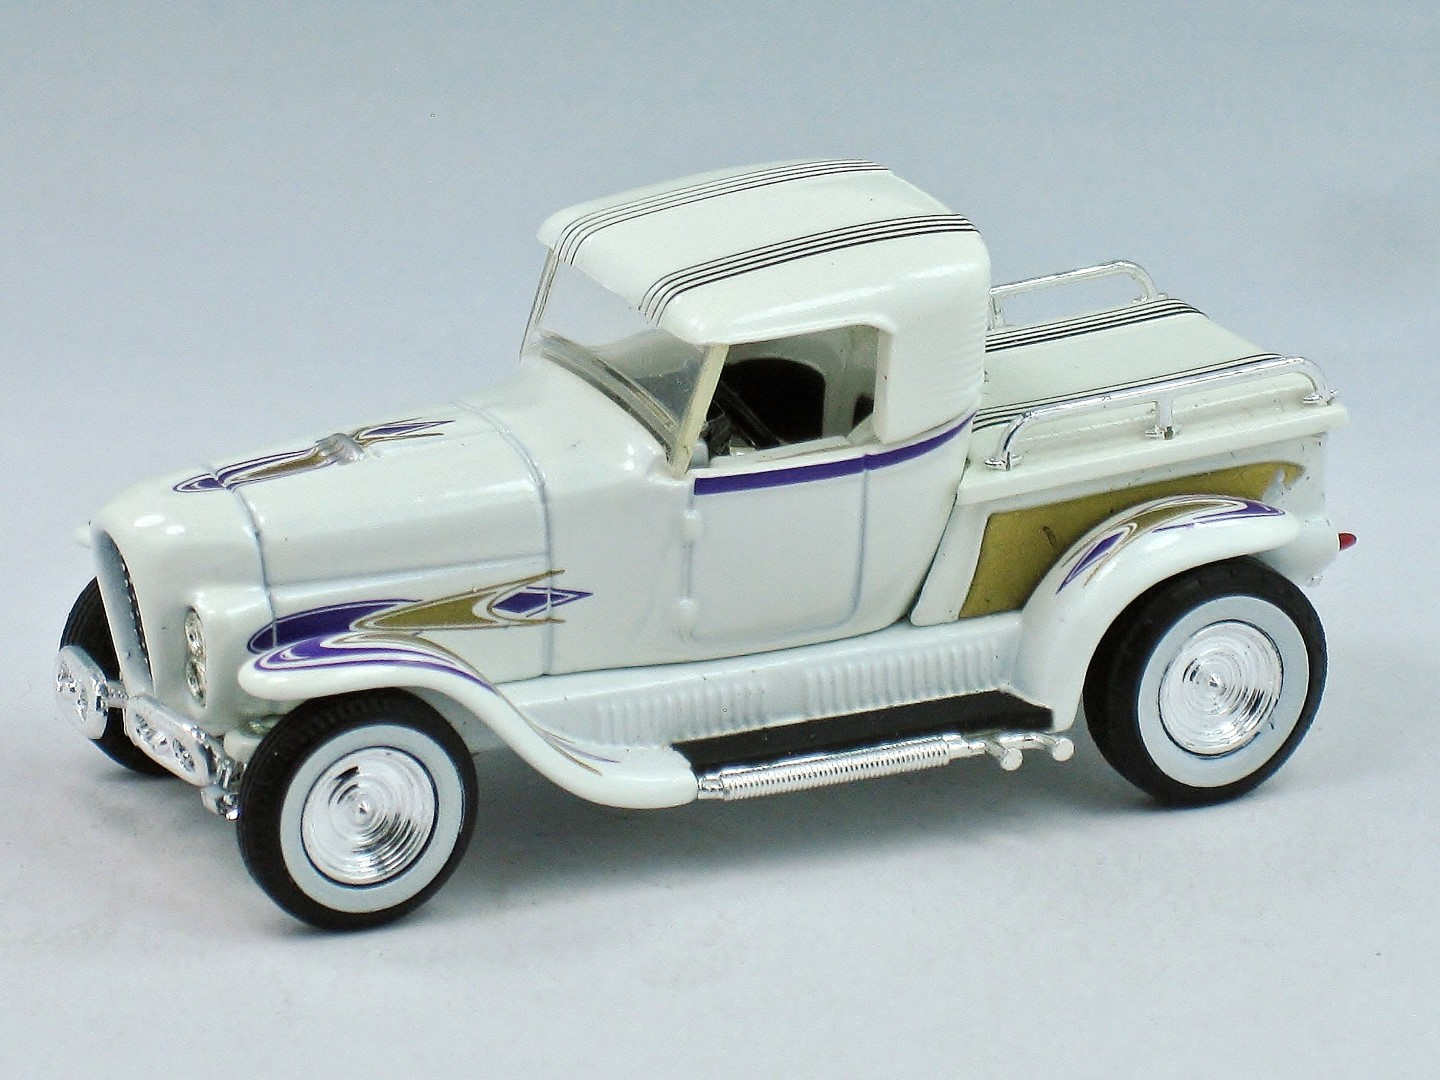 Legends: Barris Kustom 4-Car Set